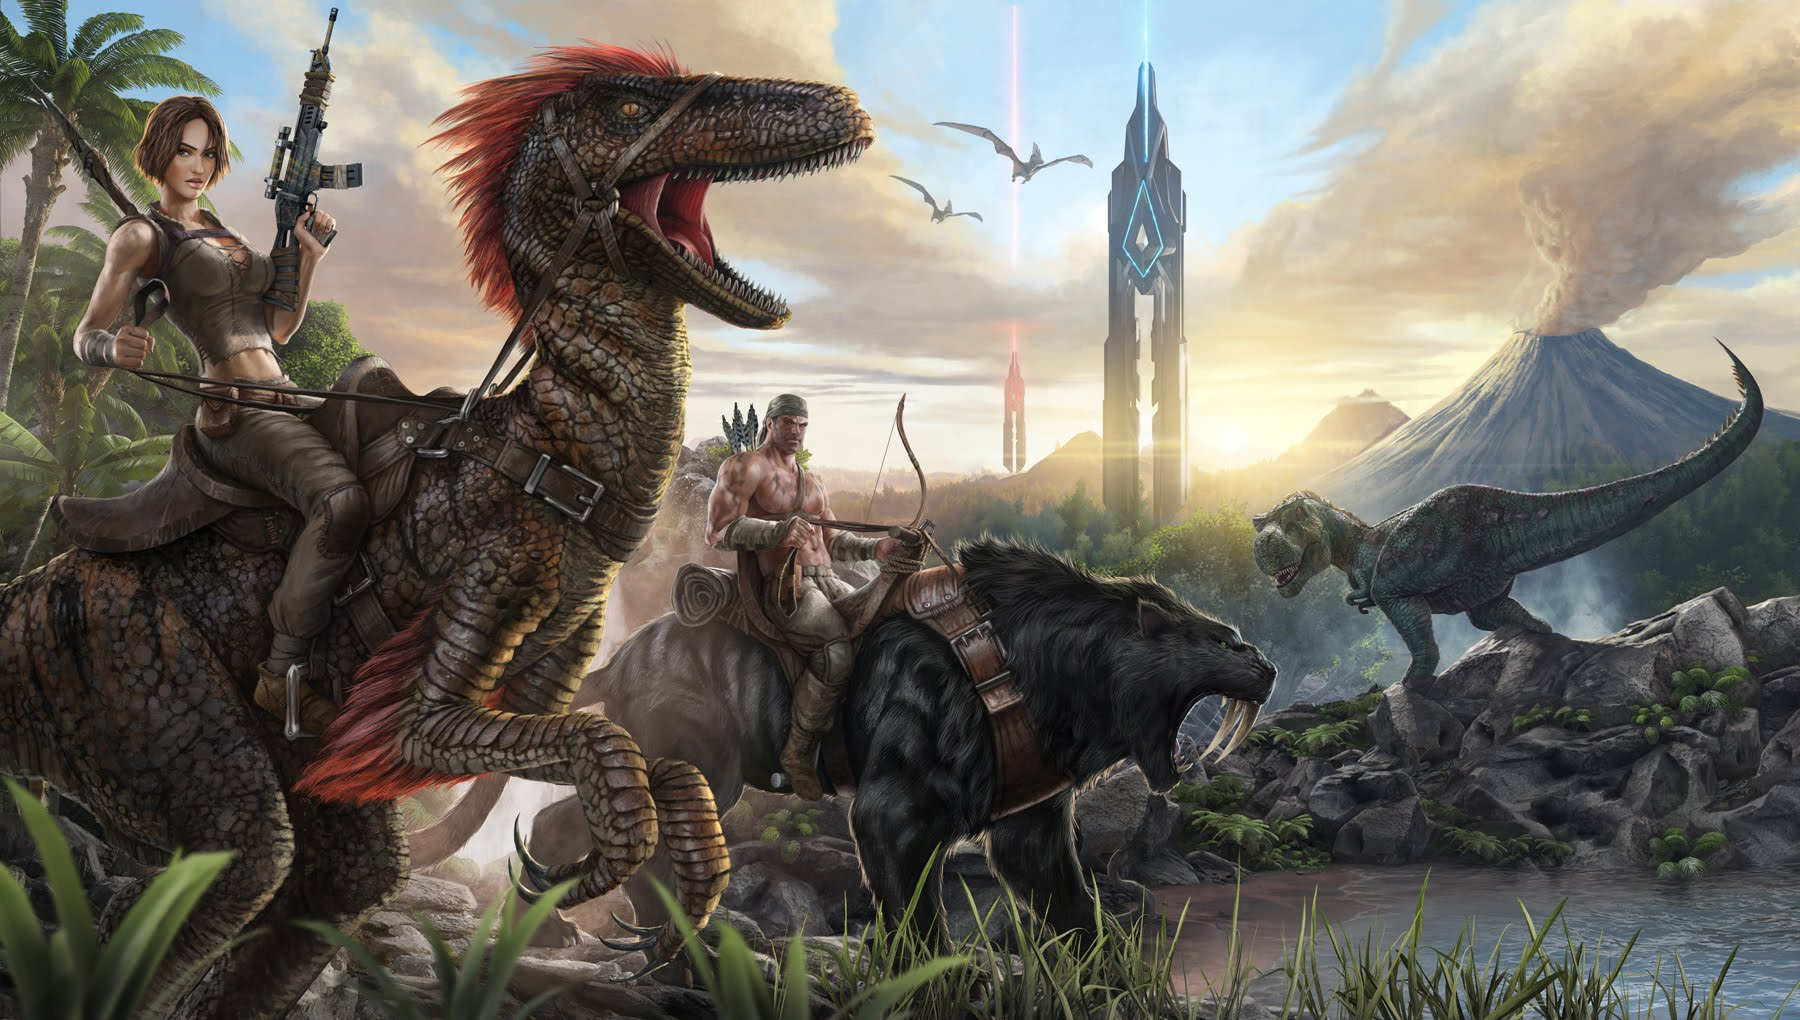 Ark: Survival Evolved Lawsuit Could End In Removal Of Game skal6j4iccfrkl3ch0yh